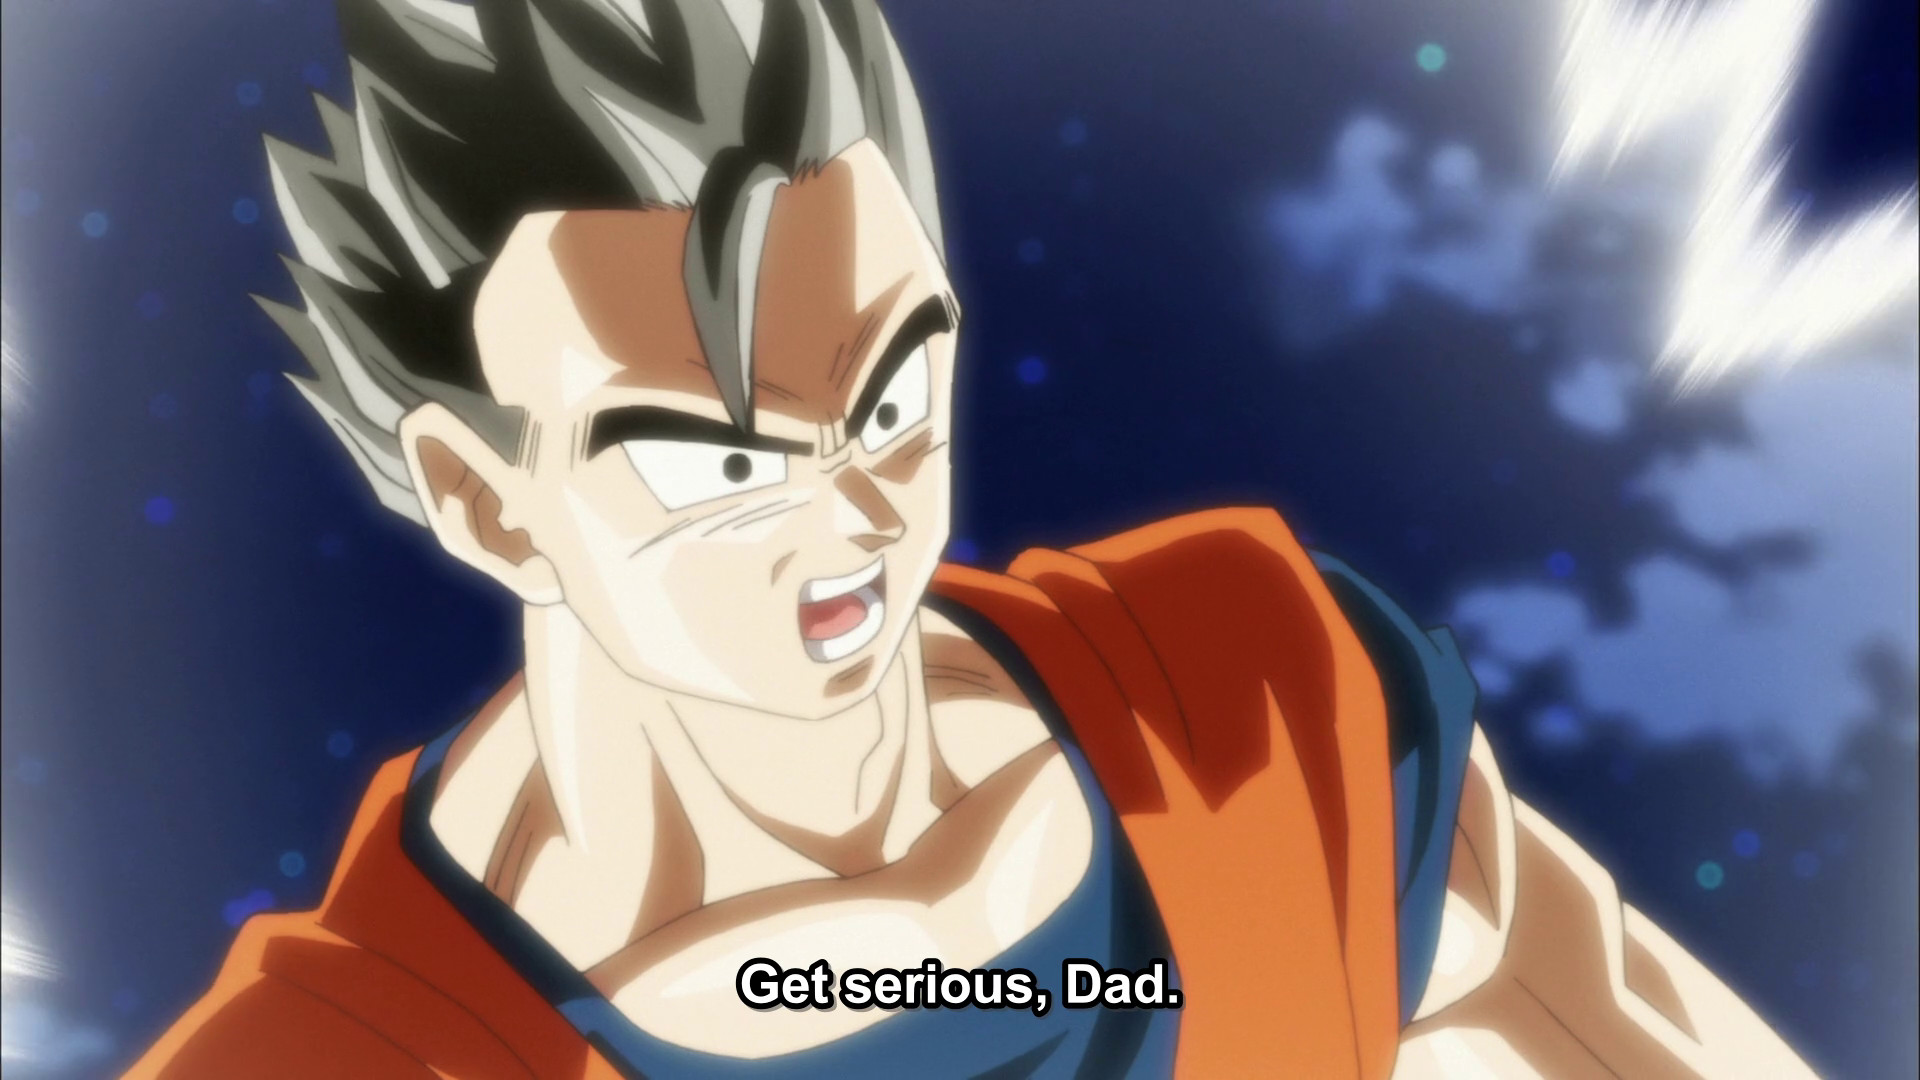 Res: 1920x1080, The first time Gohan told his dad to take him seriously, Goku wasn't  listening. When that didn't go through as Gohan's still getting easy jabs  in between ...